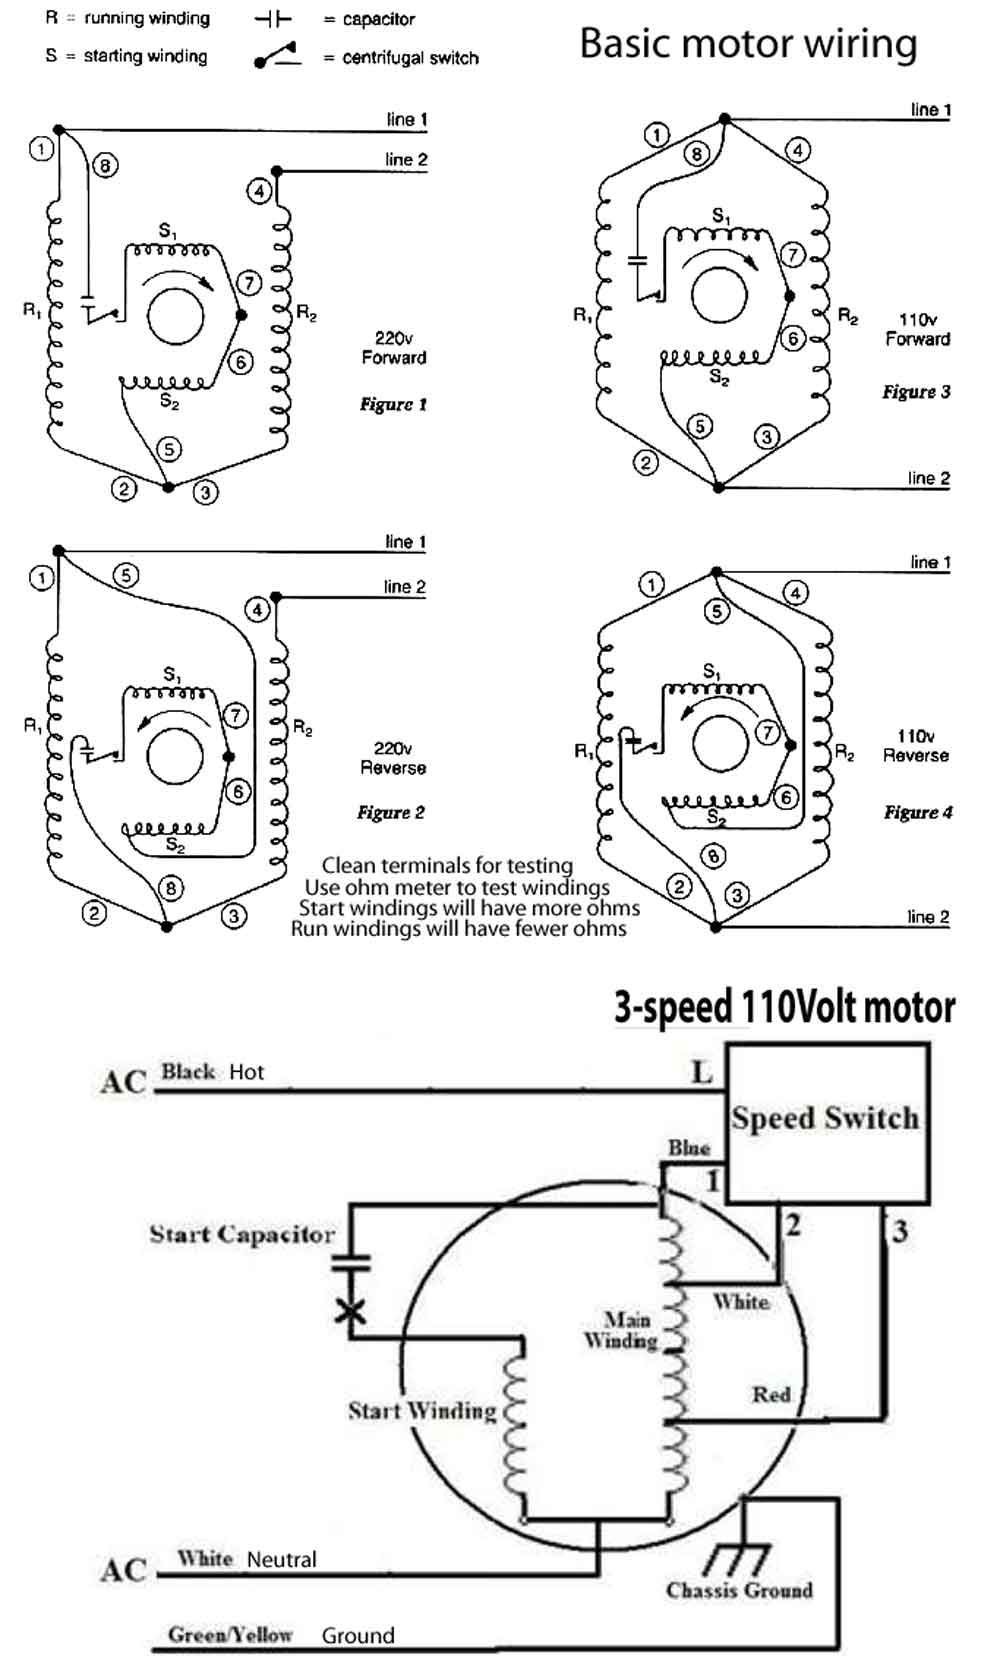 How To Wire 3-Speed Fan Switch - 3 Speed Fan Switch Wiring Diagram